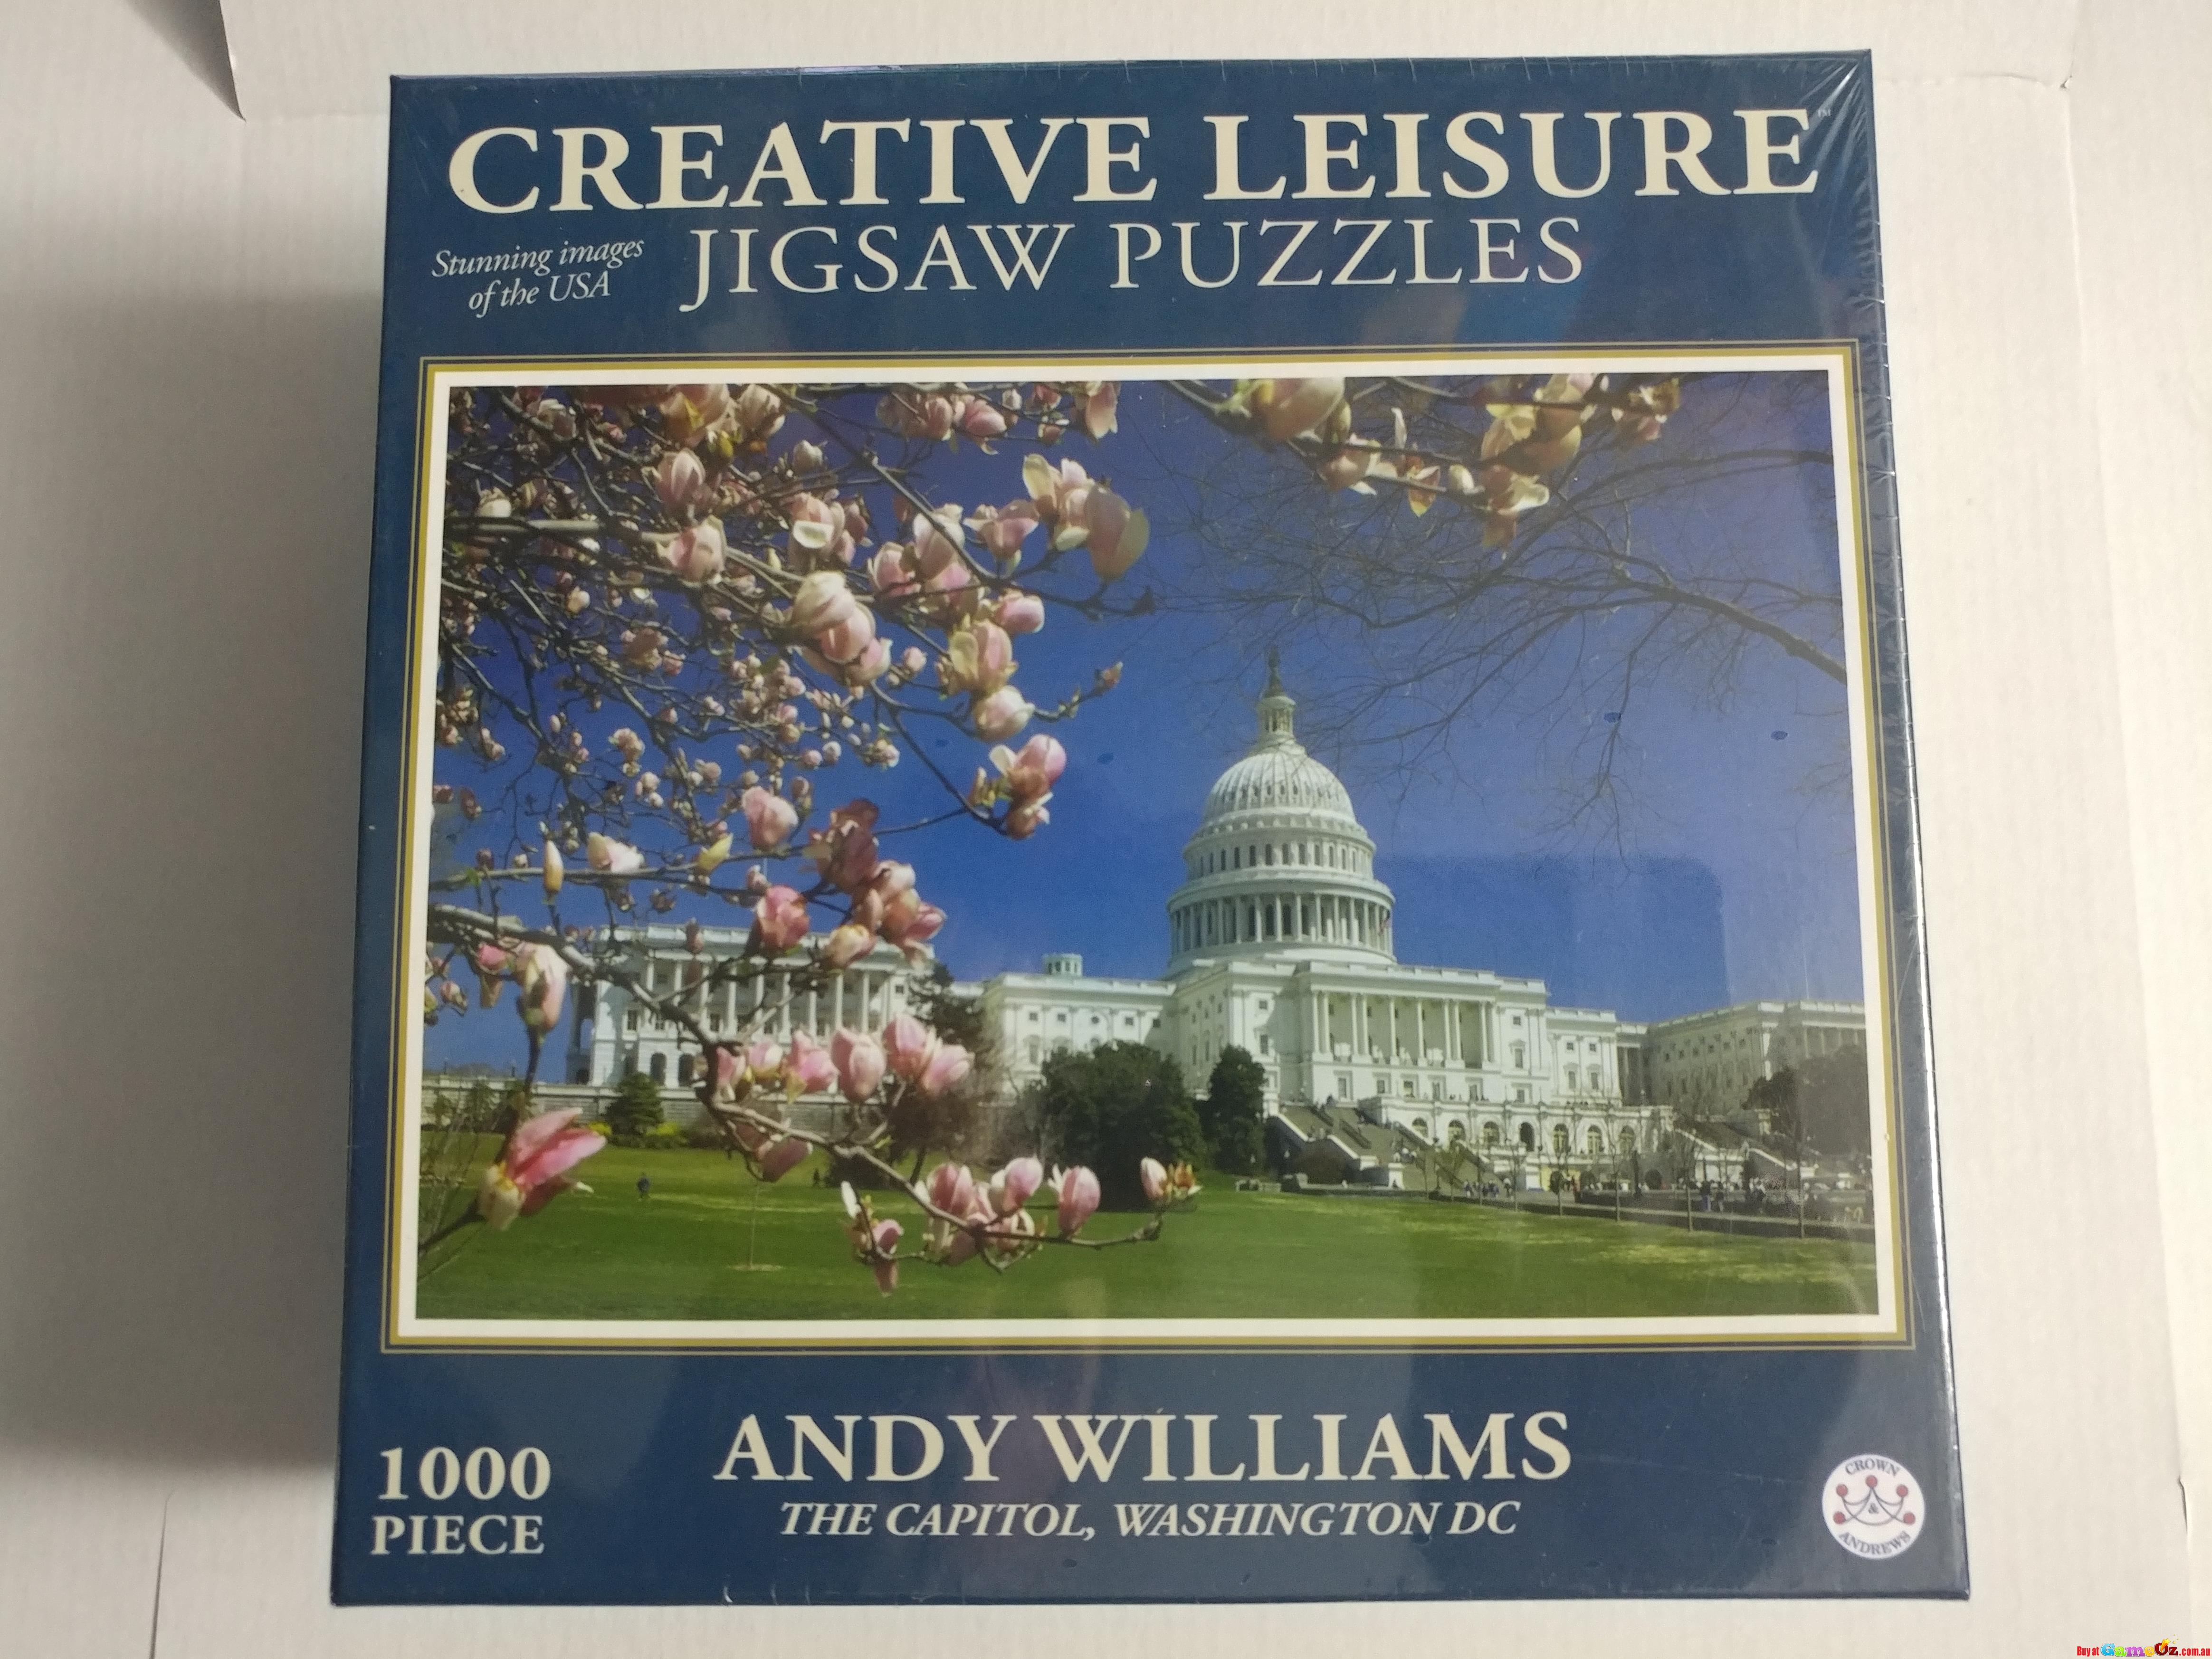 The Capitol Washington DC - Andy Williams - 1000 Piece Jigsaw Puzzle